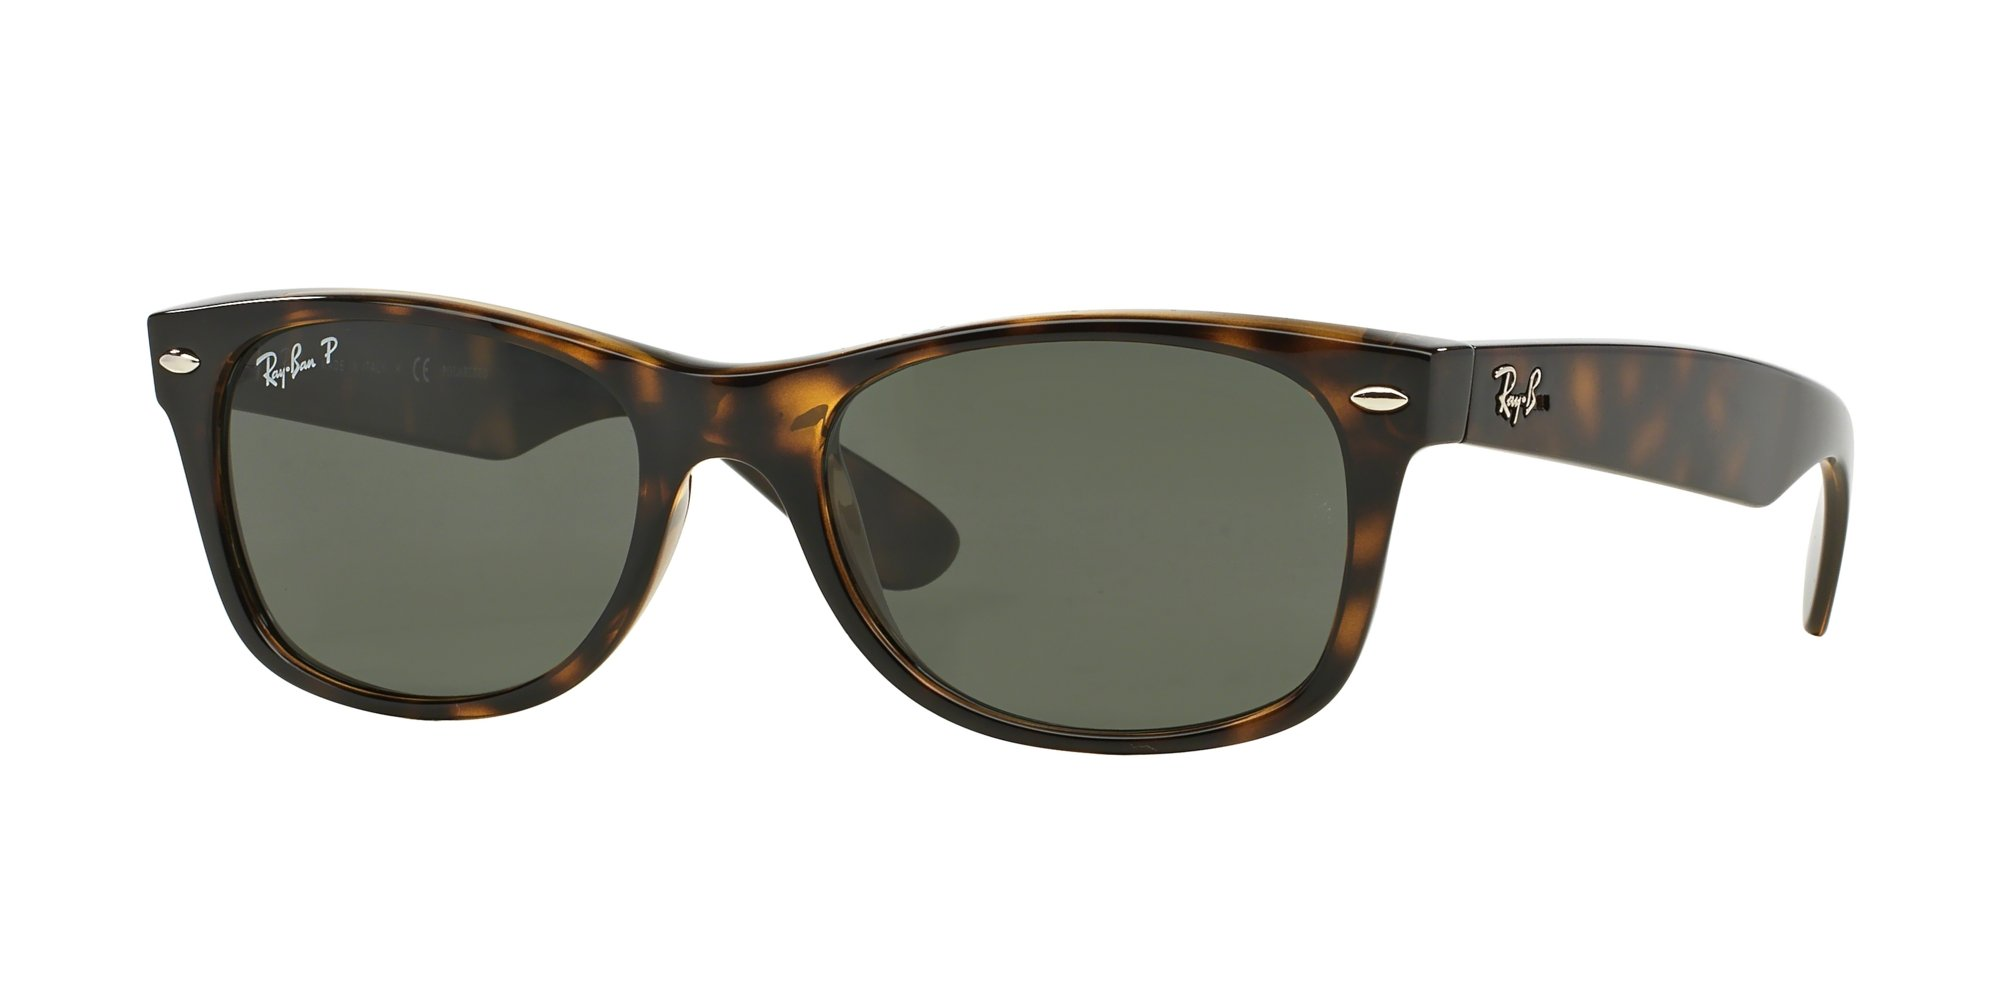 Ray-Ban RB2132 NEW WAYFARER 902/58 52M Tortoise/Crystal Green Polarized Sunglasses For Men For Women by Ray-Ban